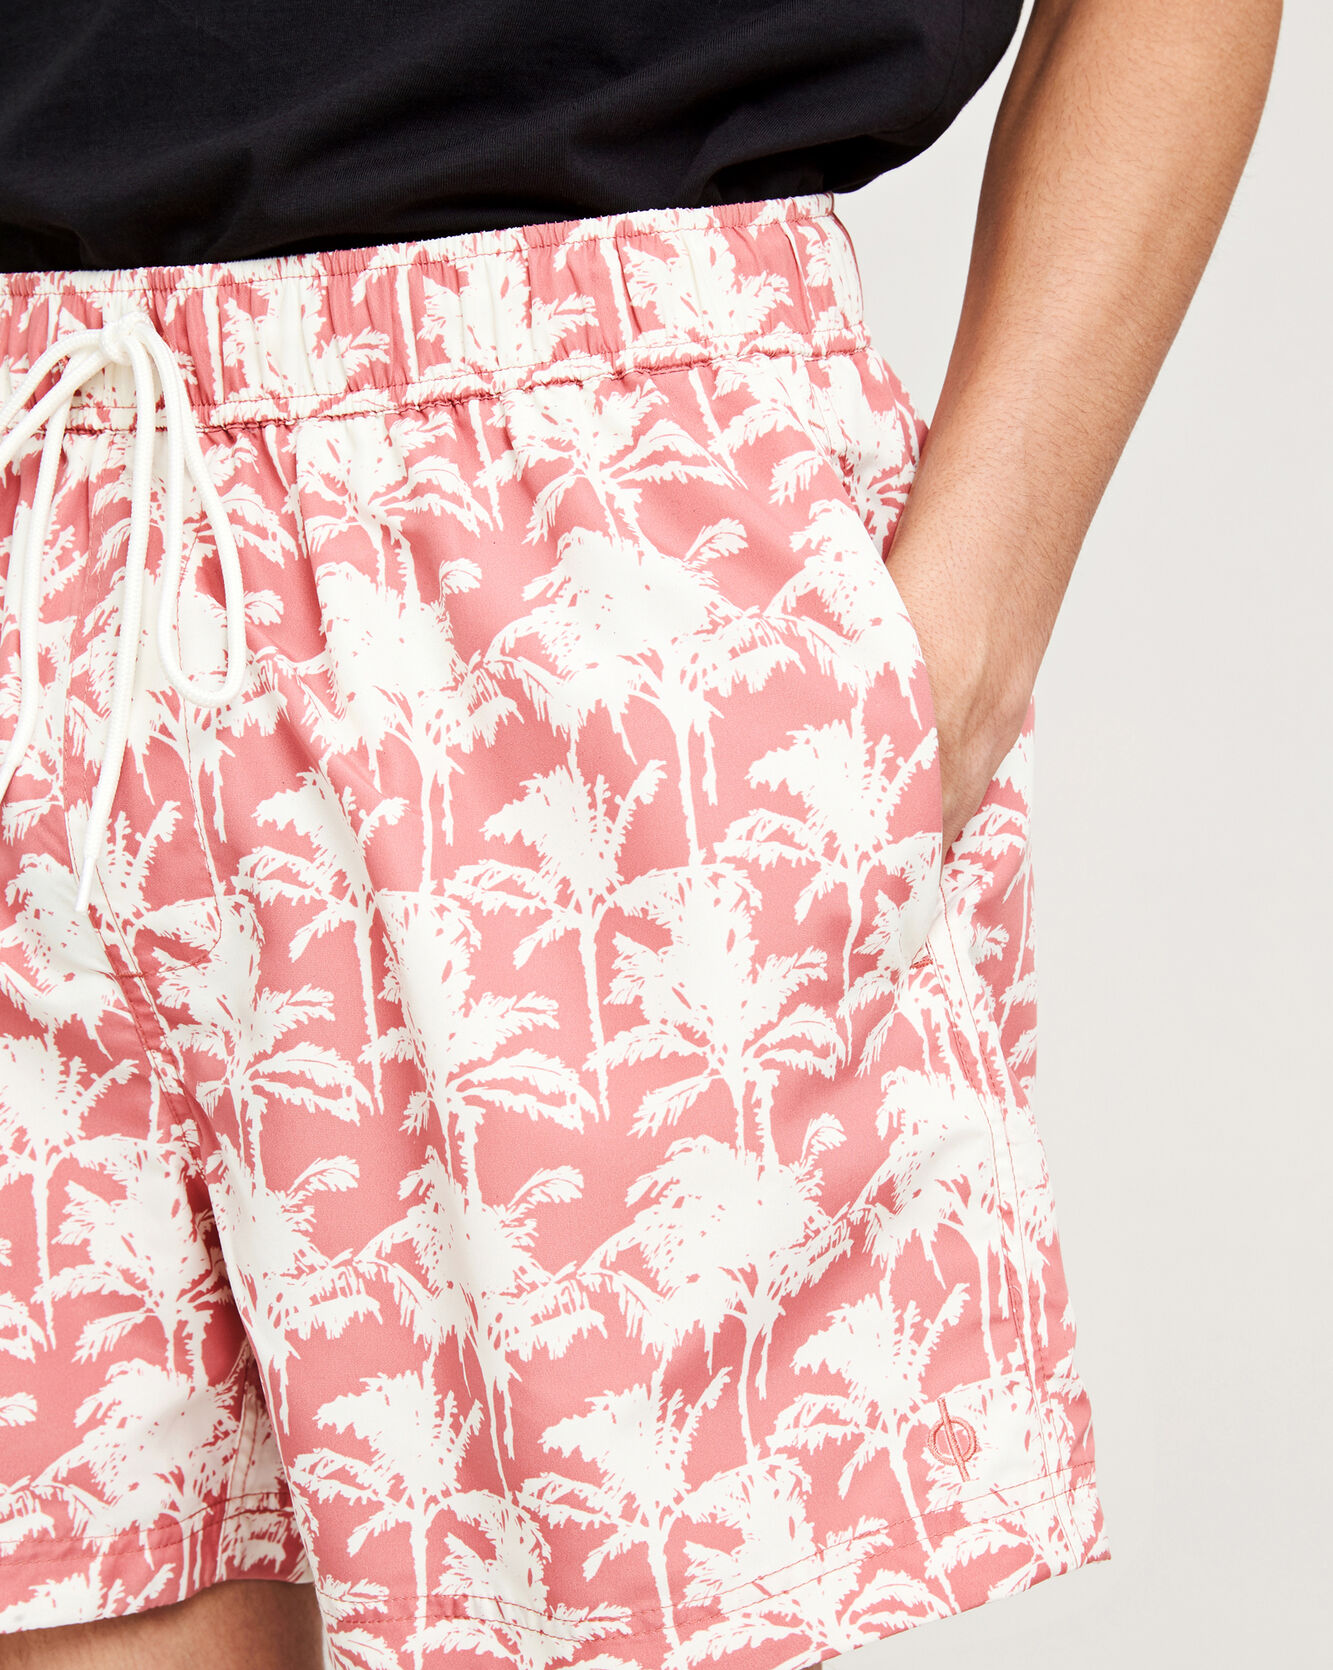 Mason swim shorts aop 6956, ROSE PALMIER AOP